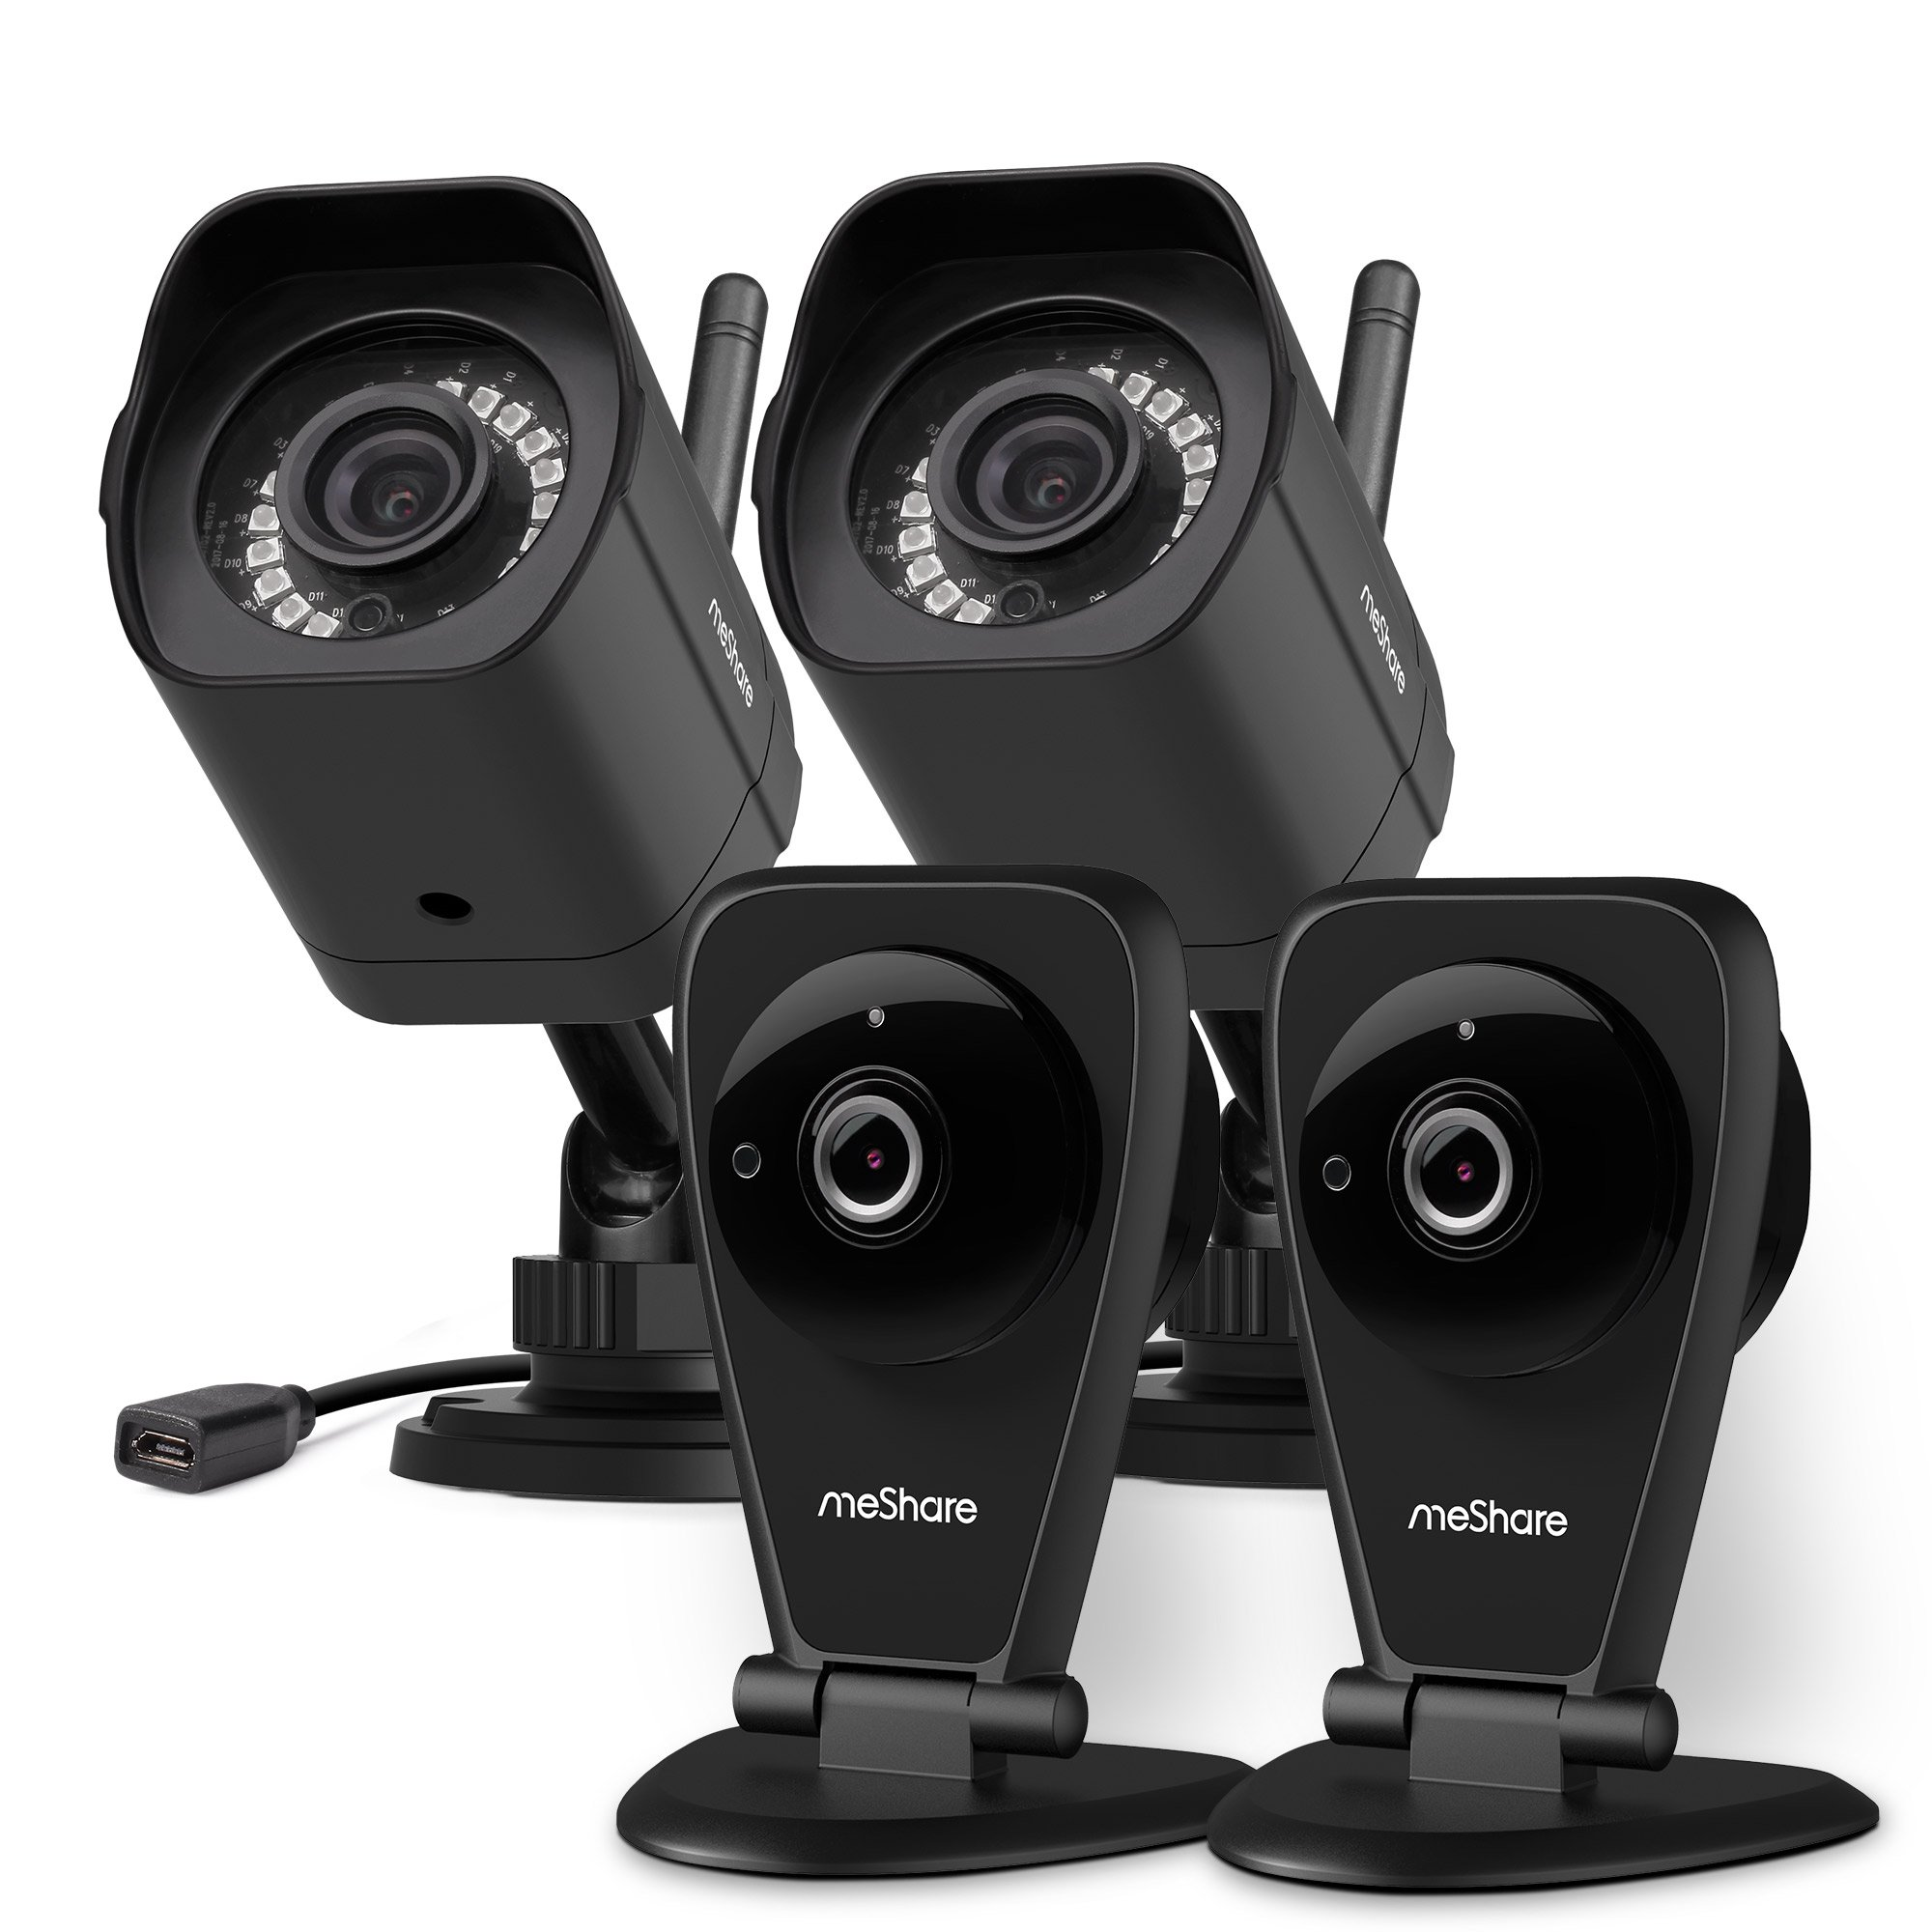 meShare 1080p Full HD Indoor Outdoor Wireless Security Camera System with Smart Motion Alerts, Night Vision, Works with Alexa